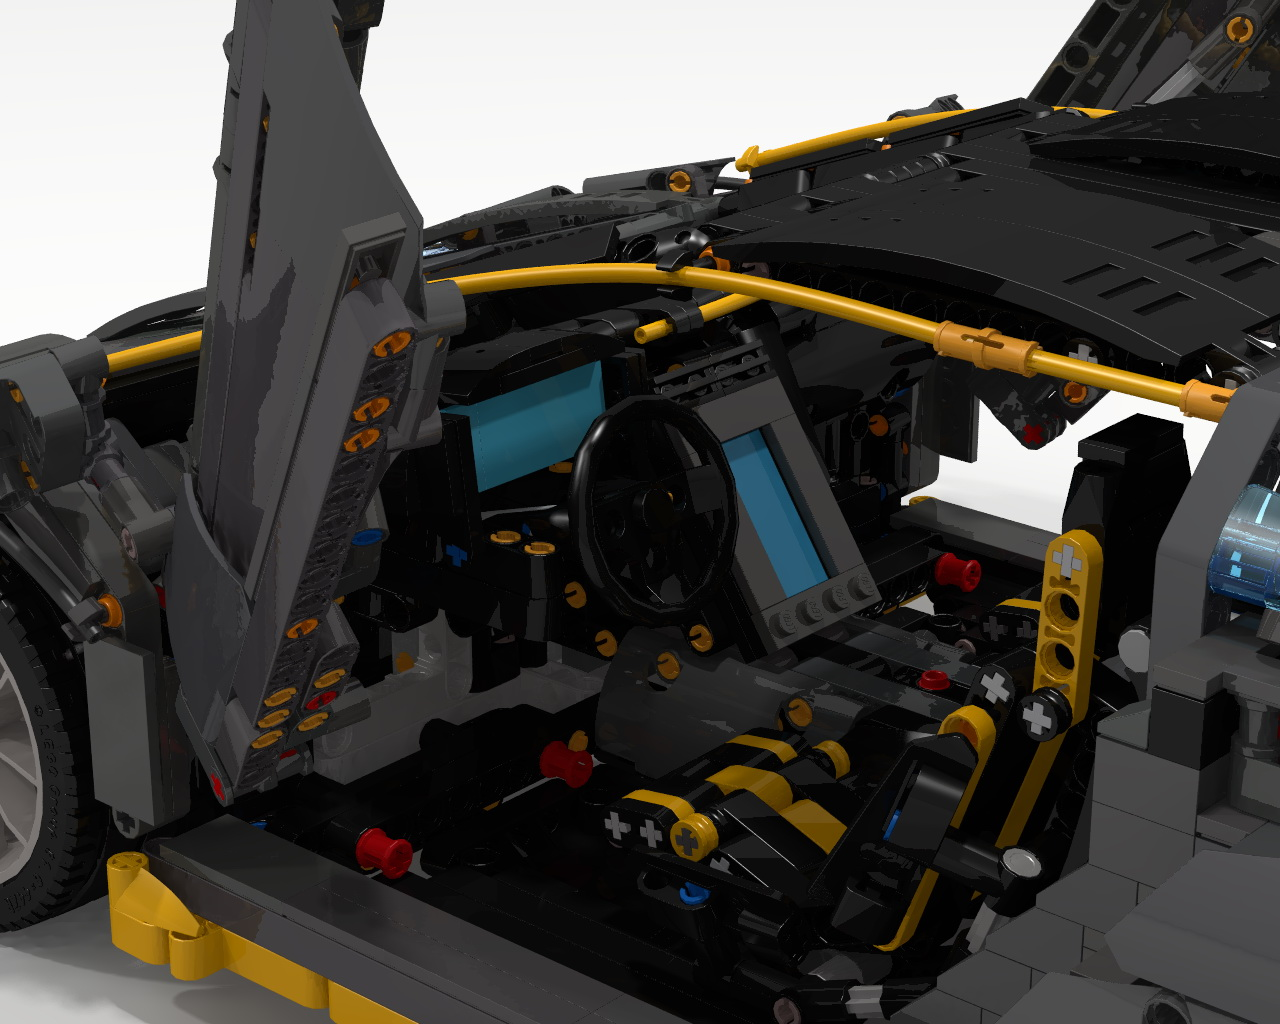 Lego Lamborghini Centenario Wants To Sit On Your Desk Will You Help